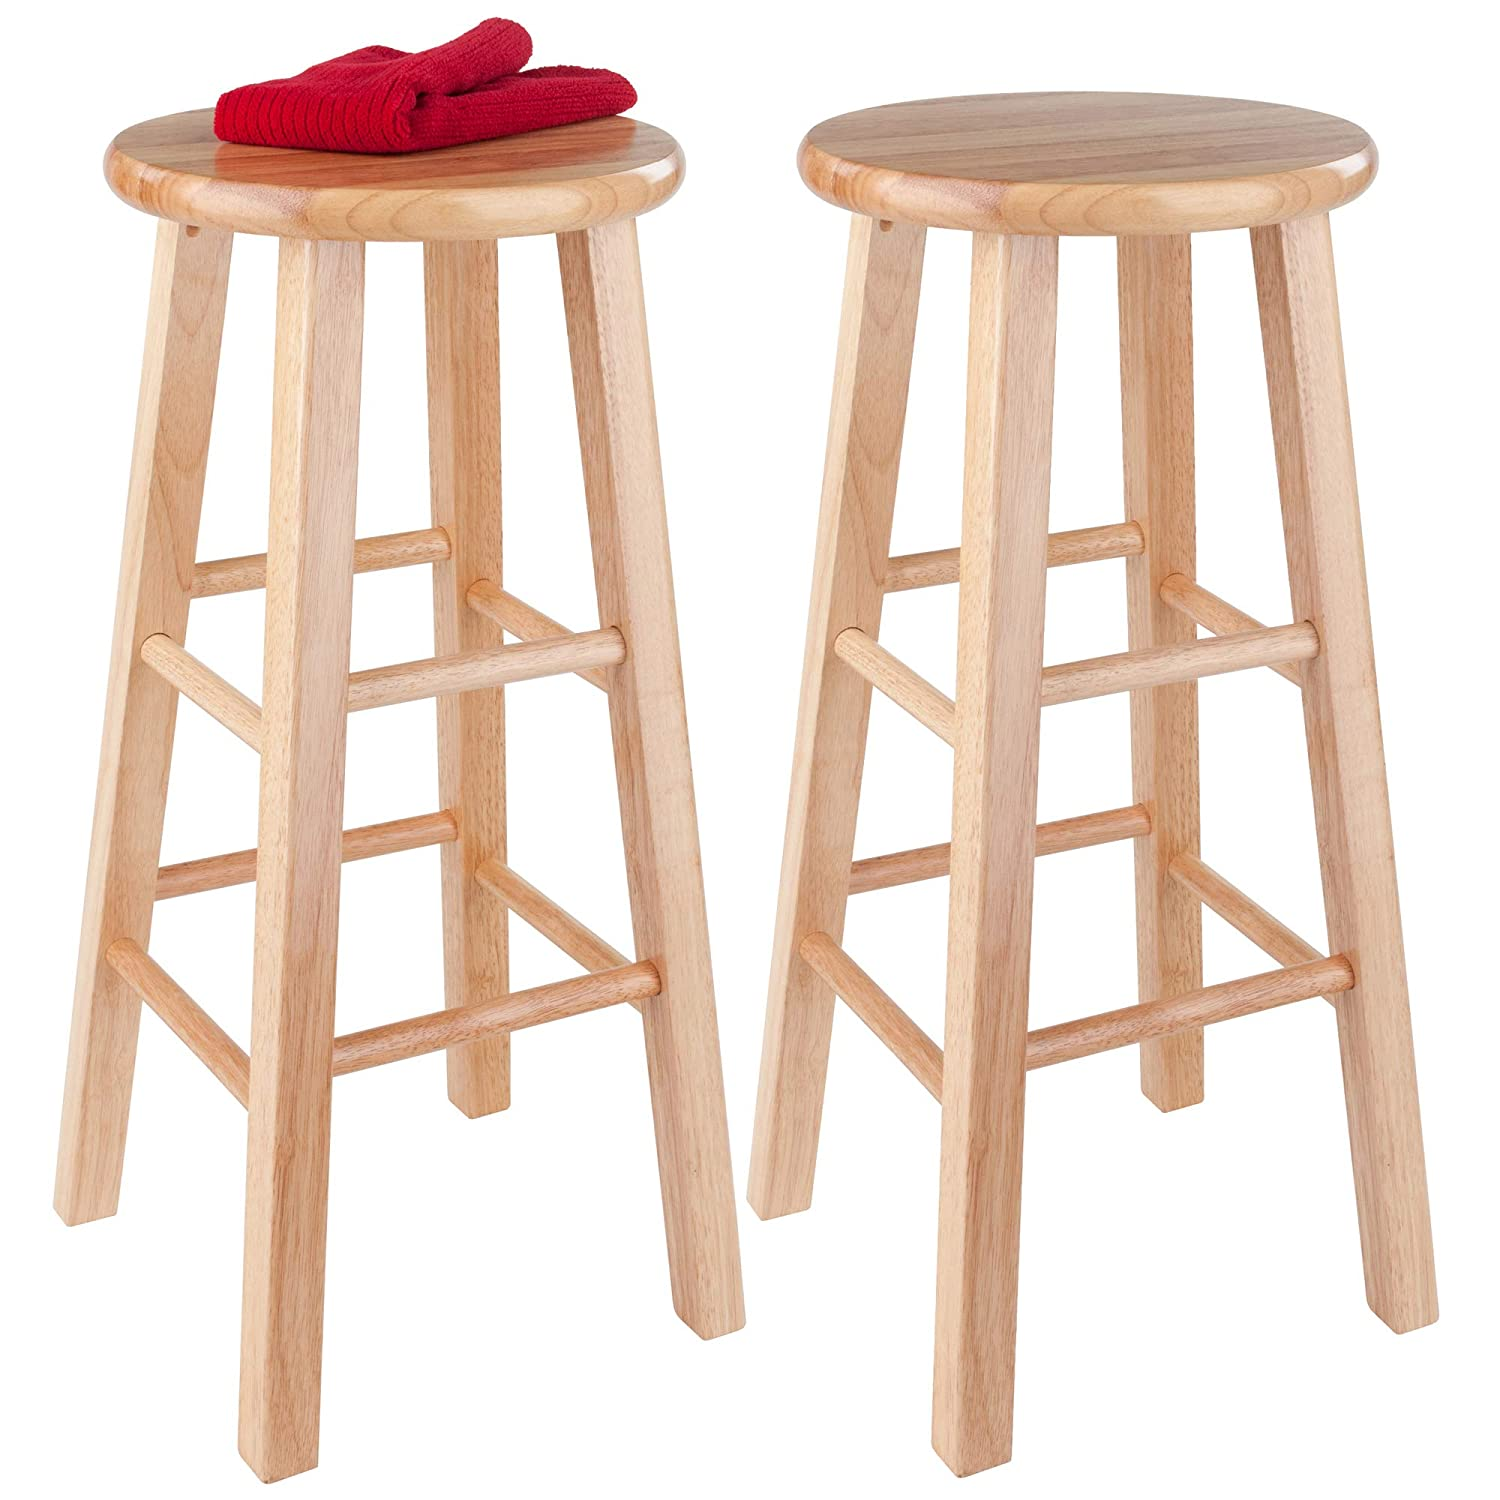 Winsome Wood 29-Inch Square Leg Bar Stool Set of 2 2 Natural